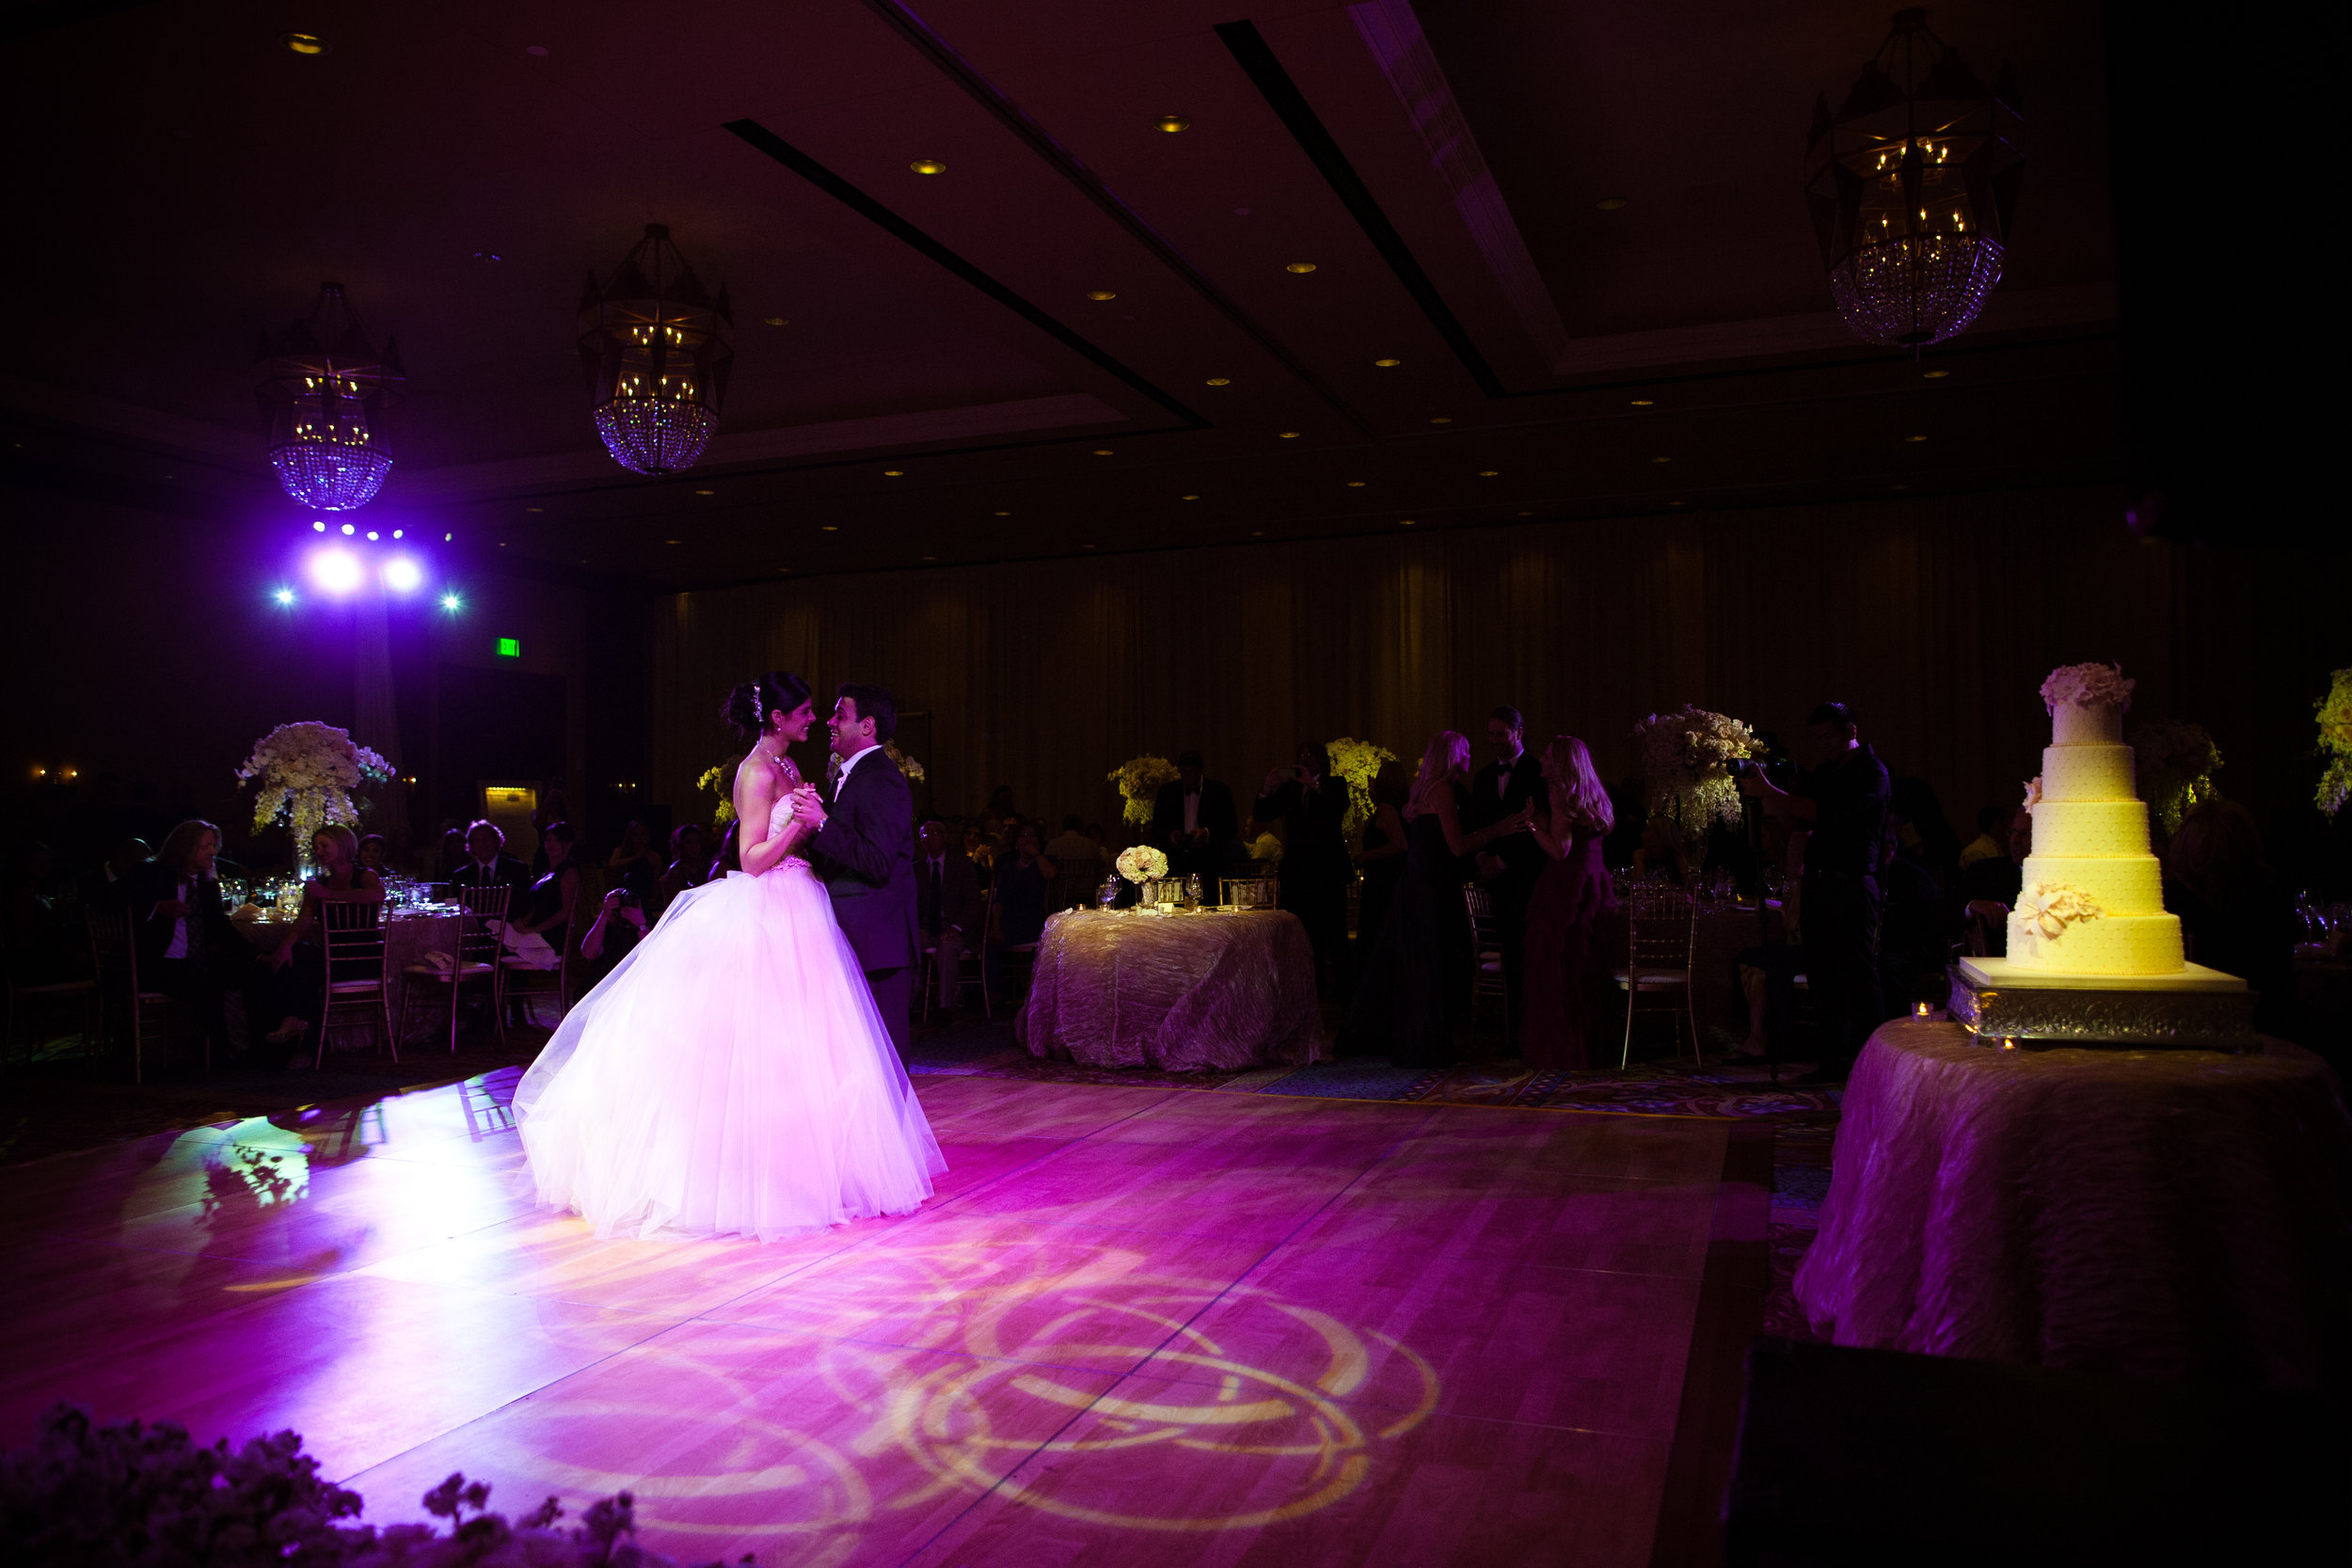 38 bride and groom first dance bride and groom on dance floor special moment with bride and groom Christine Johnson Photography Life design events .jpg